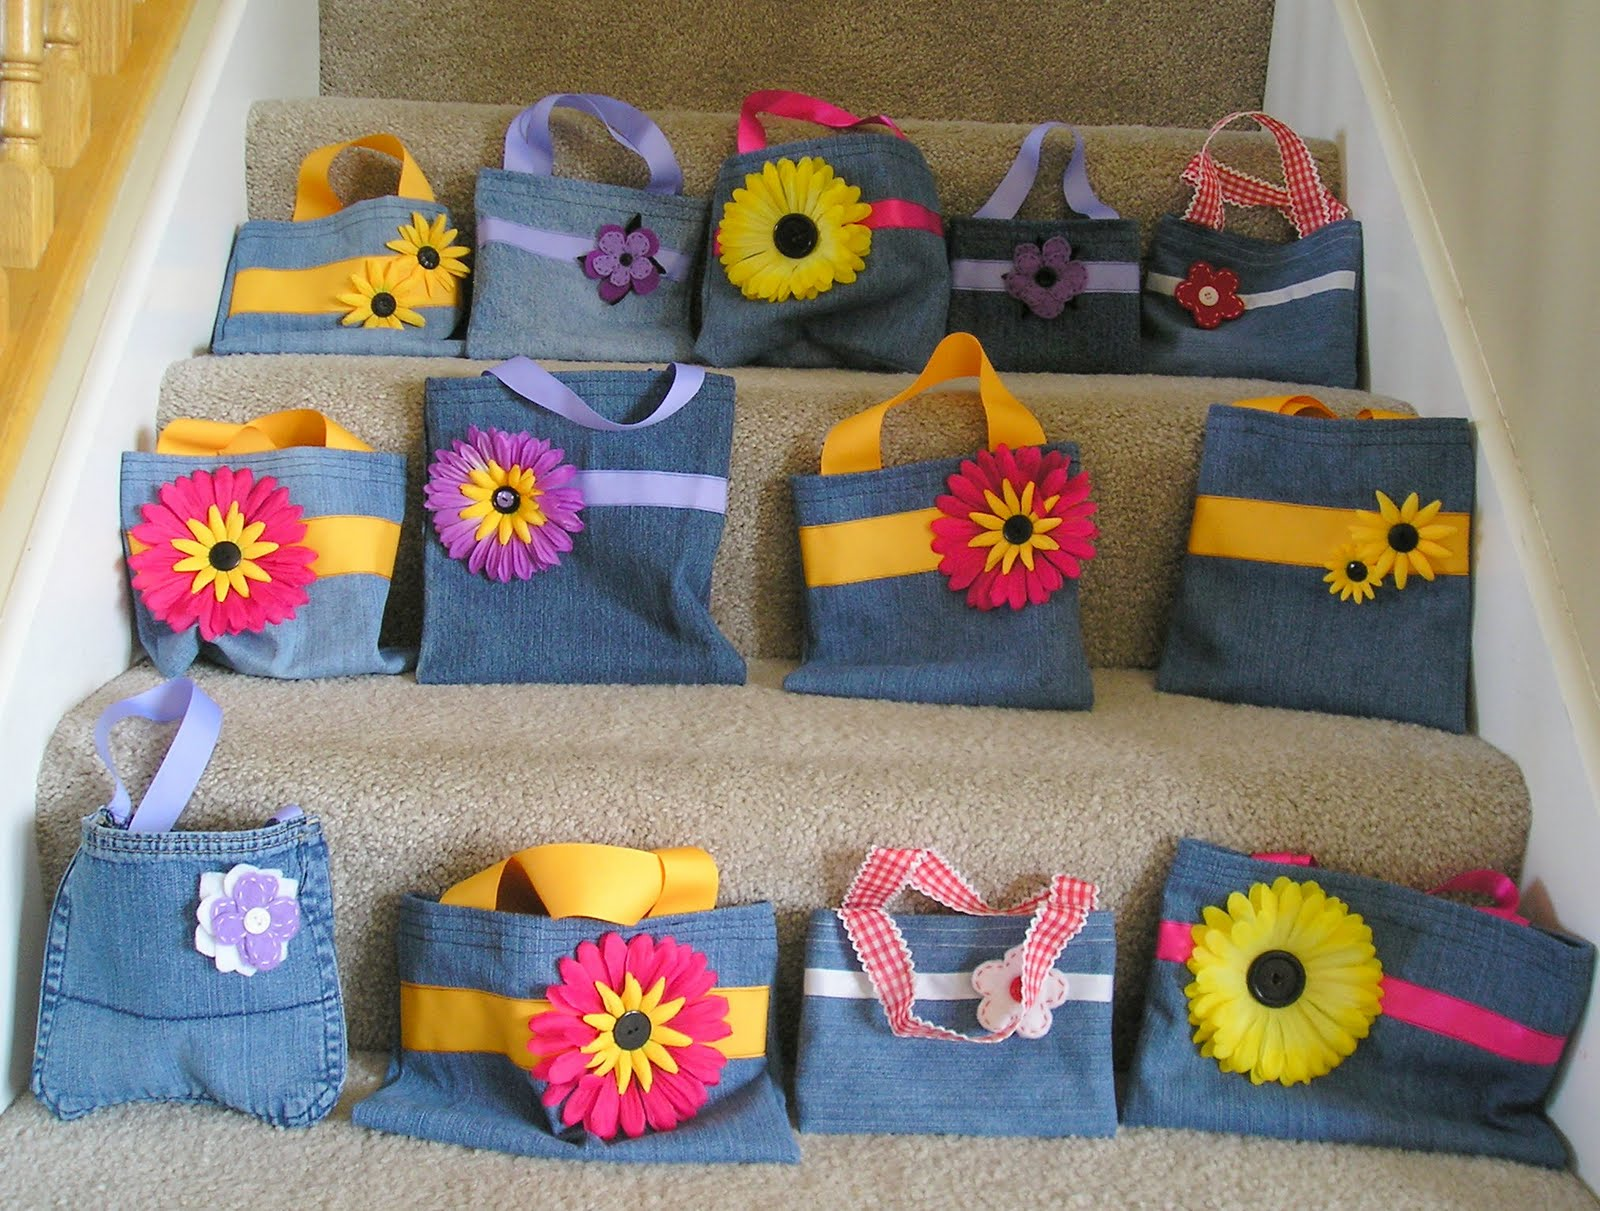 how to make a lunch bag out of old jeans